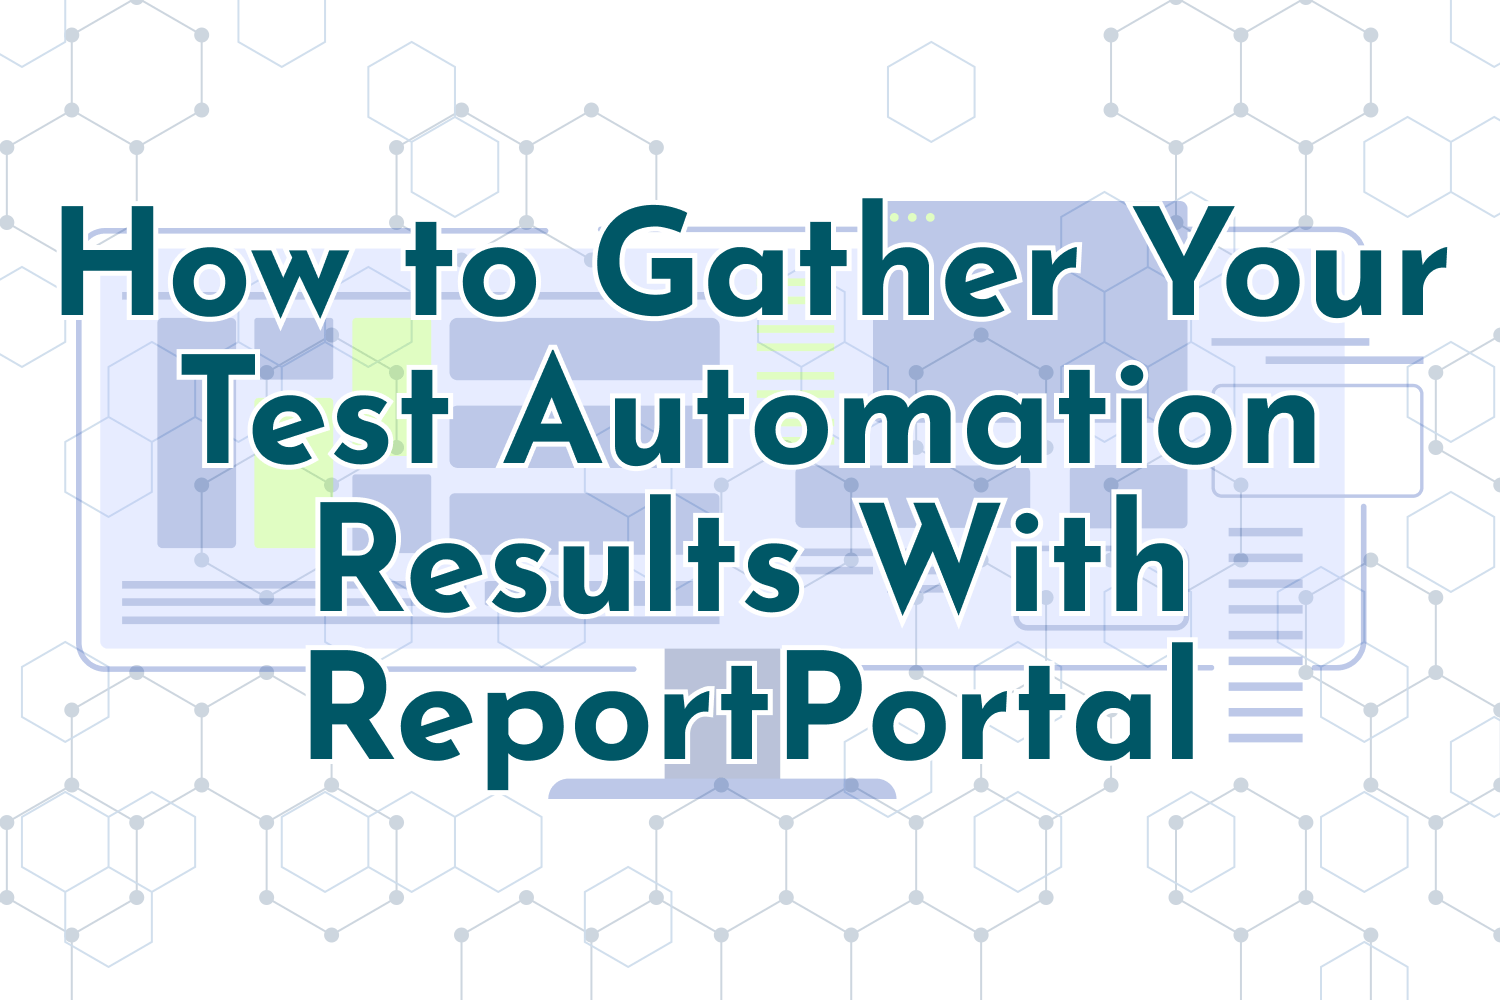 How to Gather Your Test Automation Results With ReportPortal